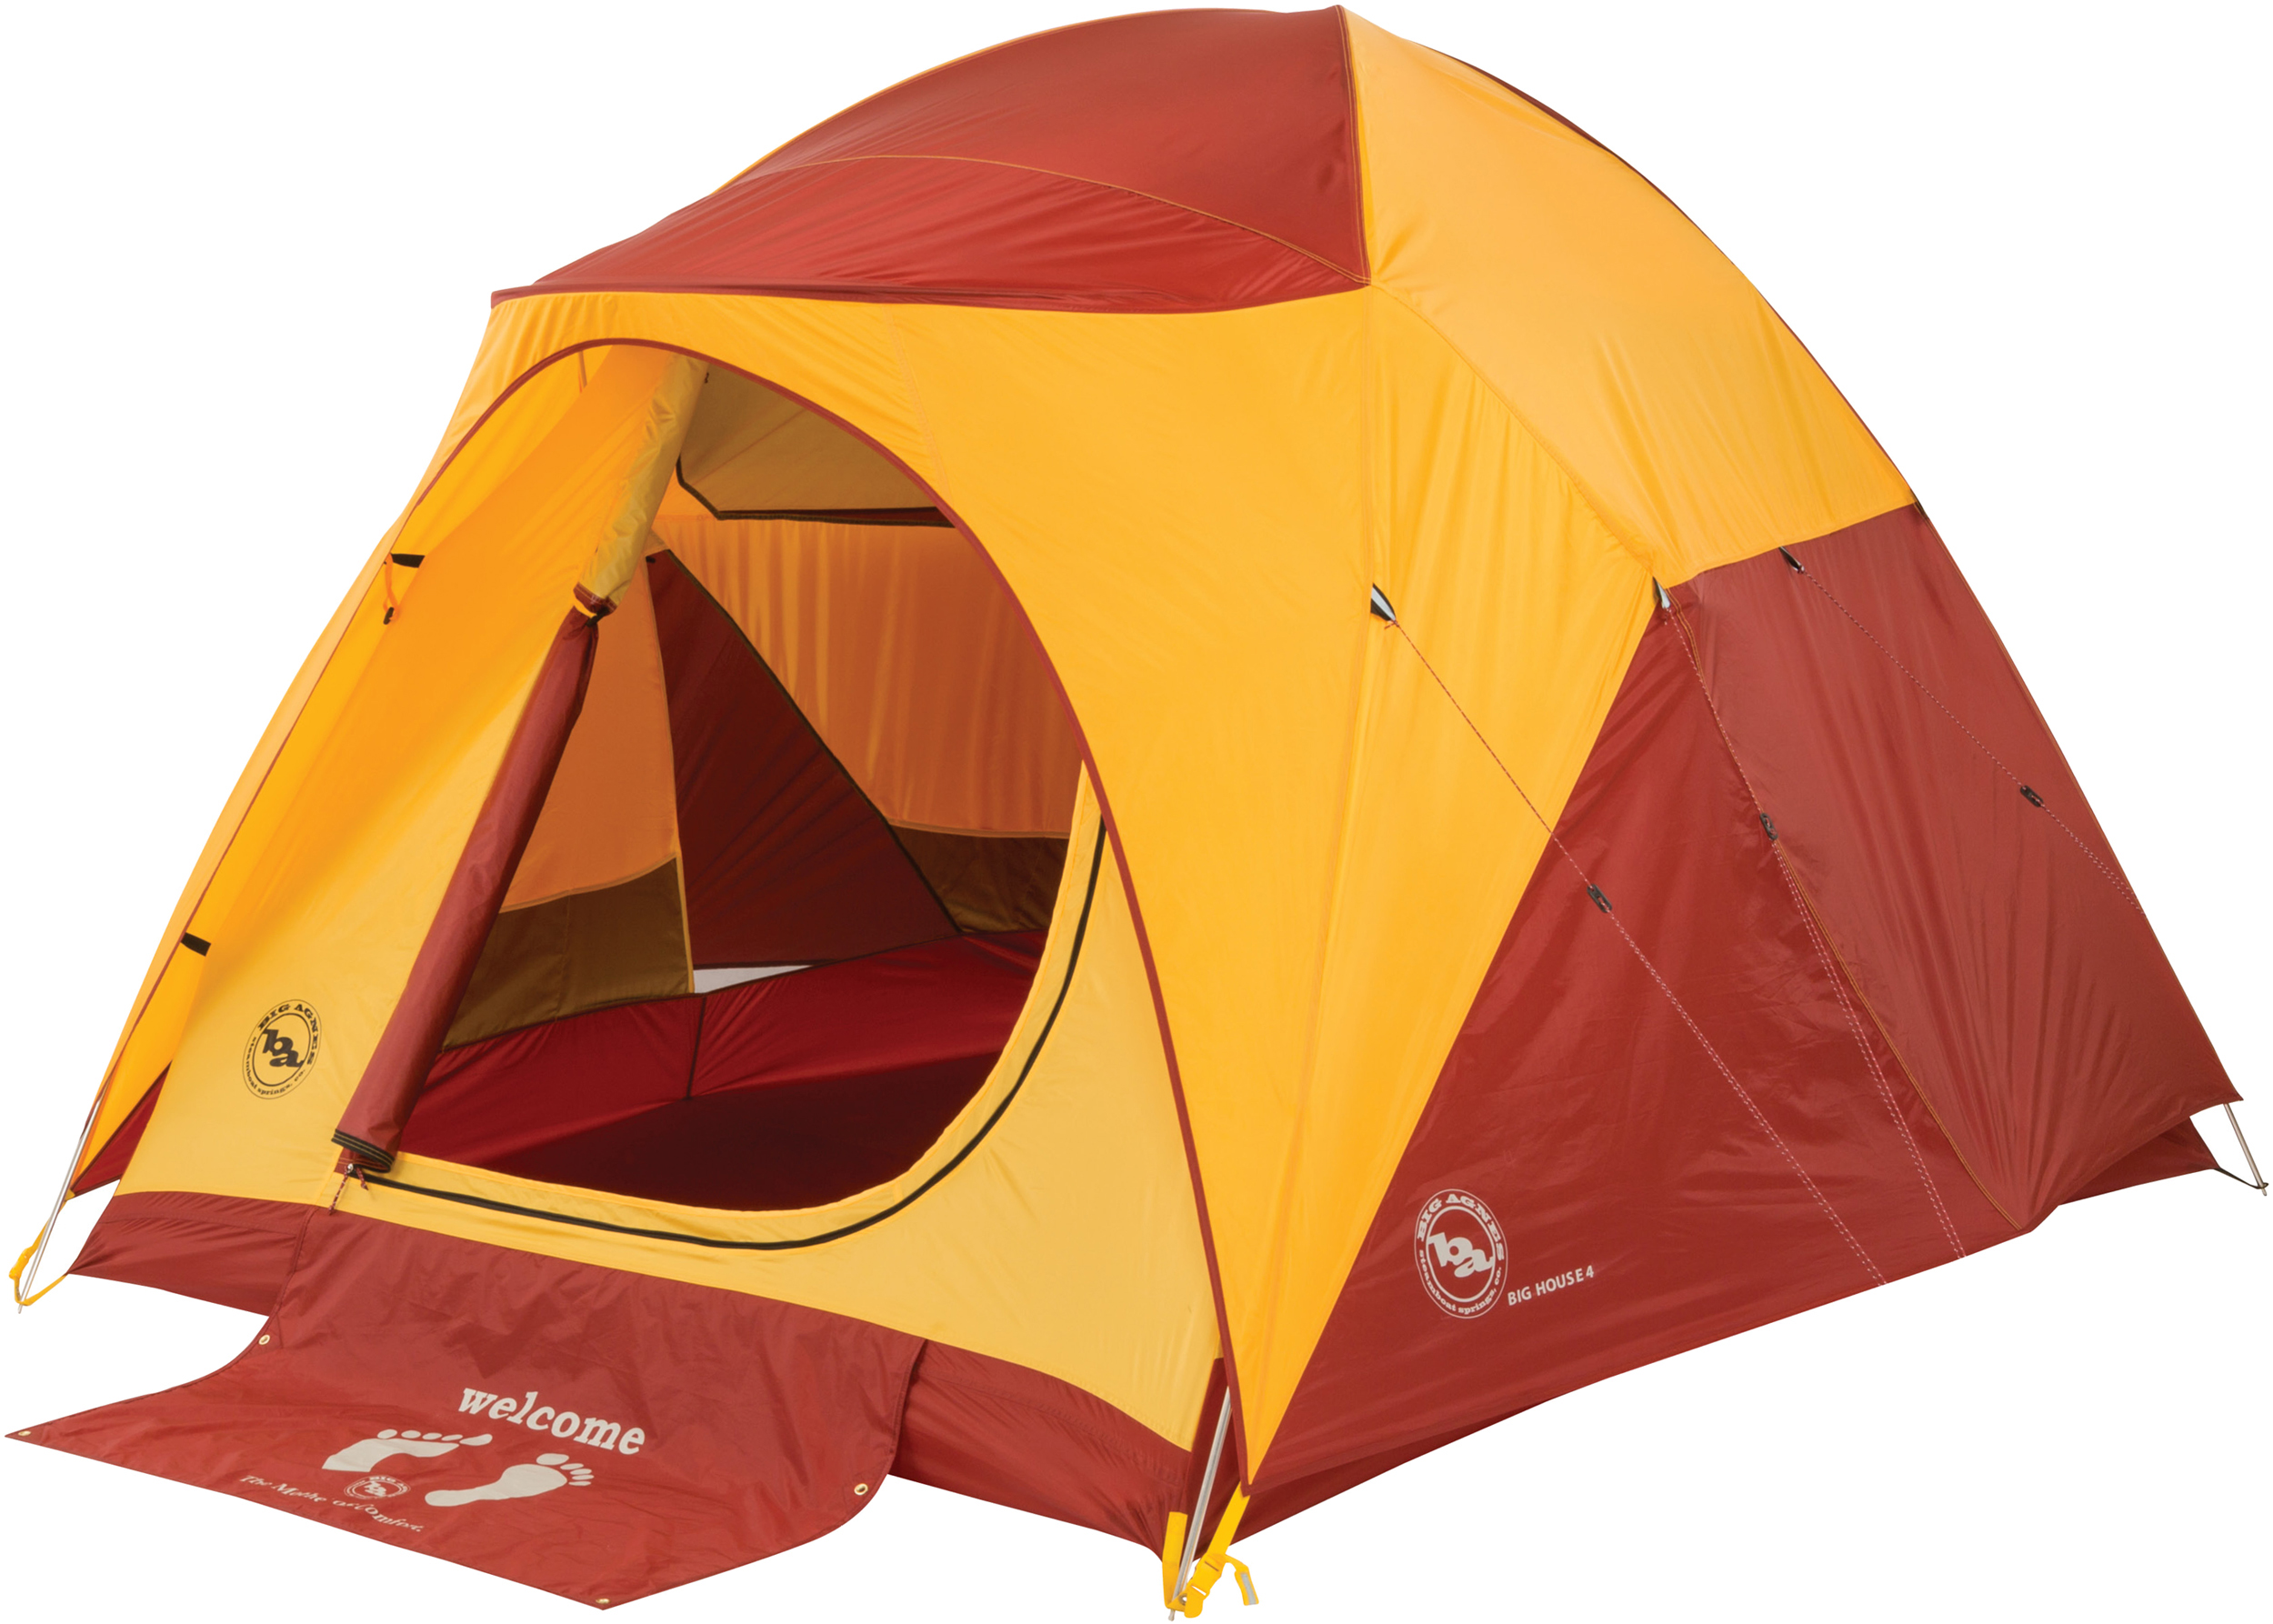 Big Agnes Big House 6-Person Tent 7240e41fb04e